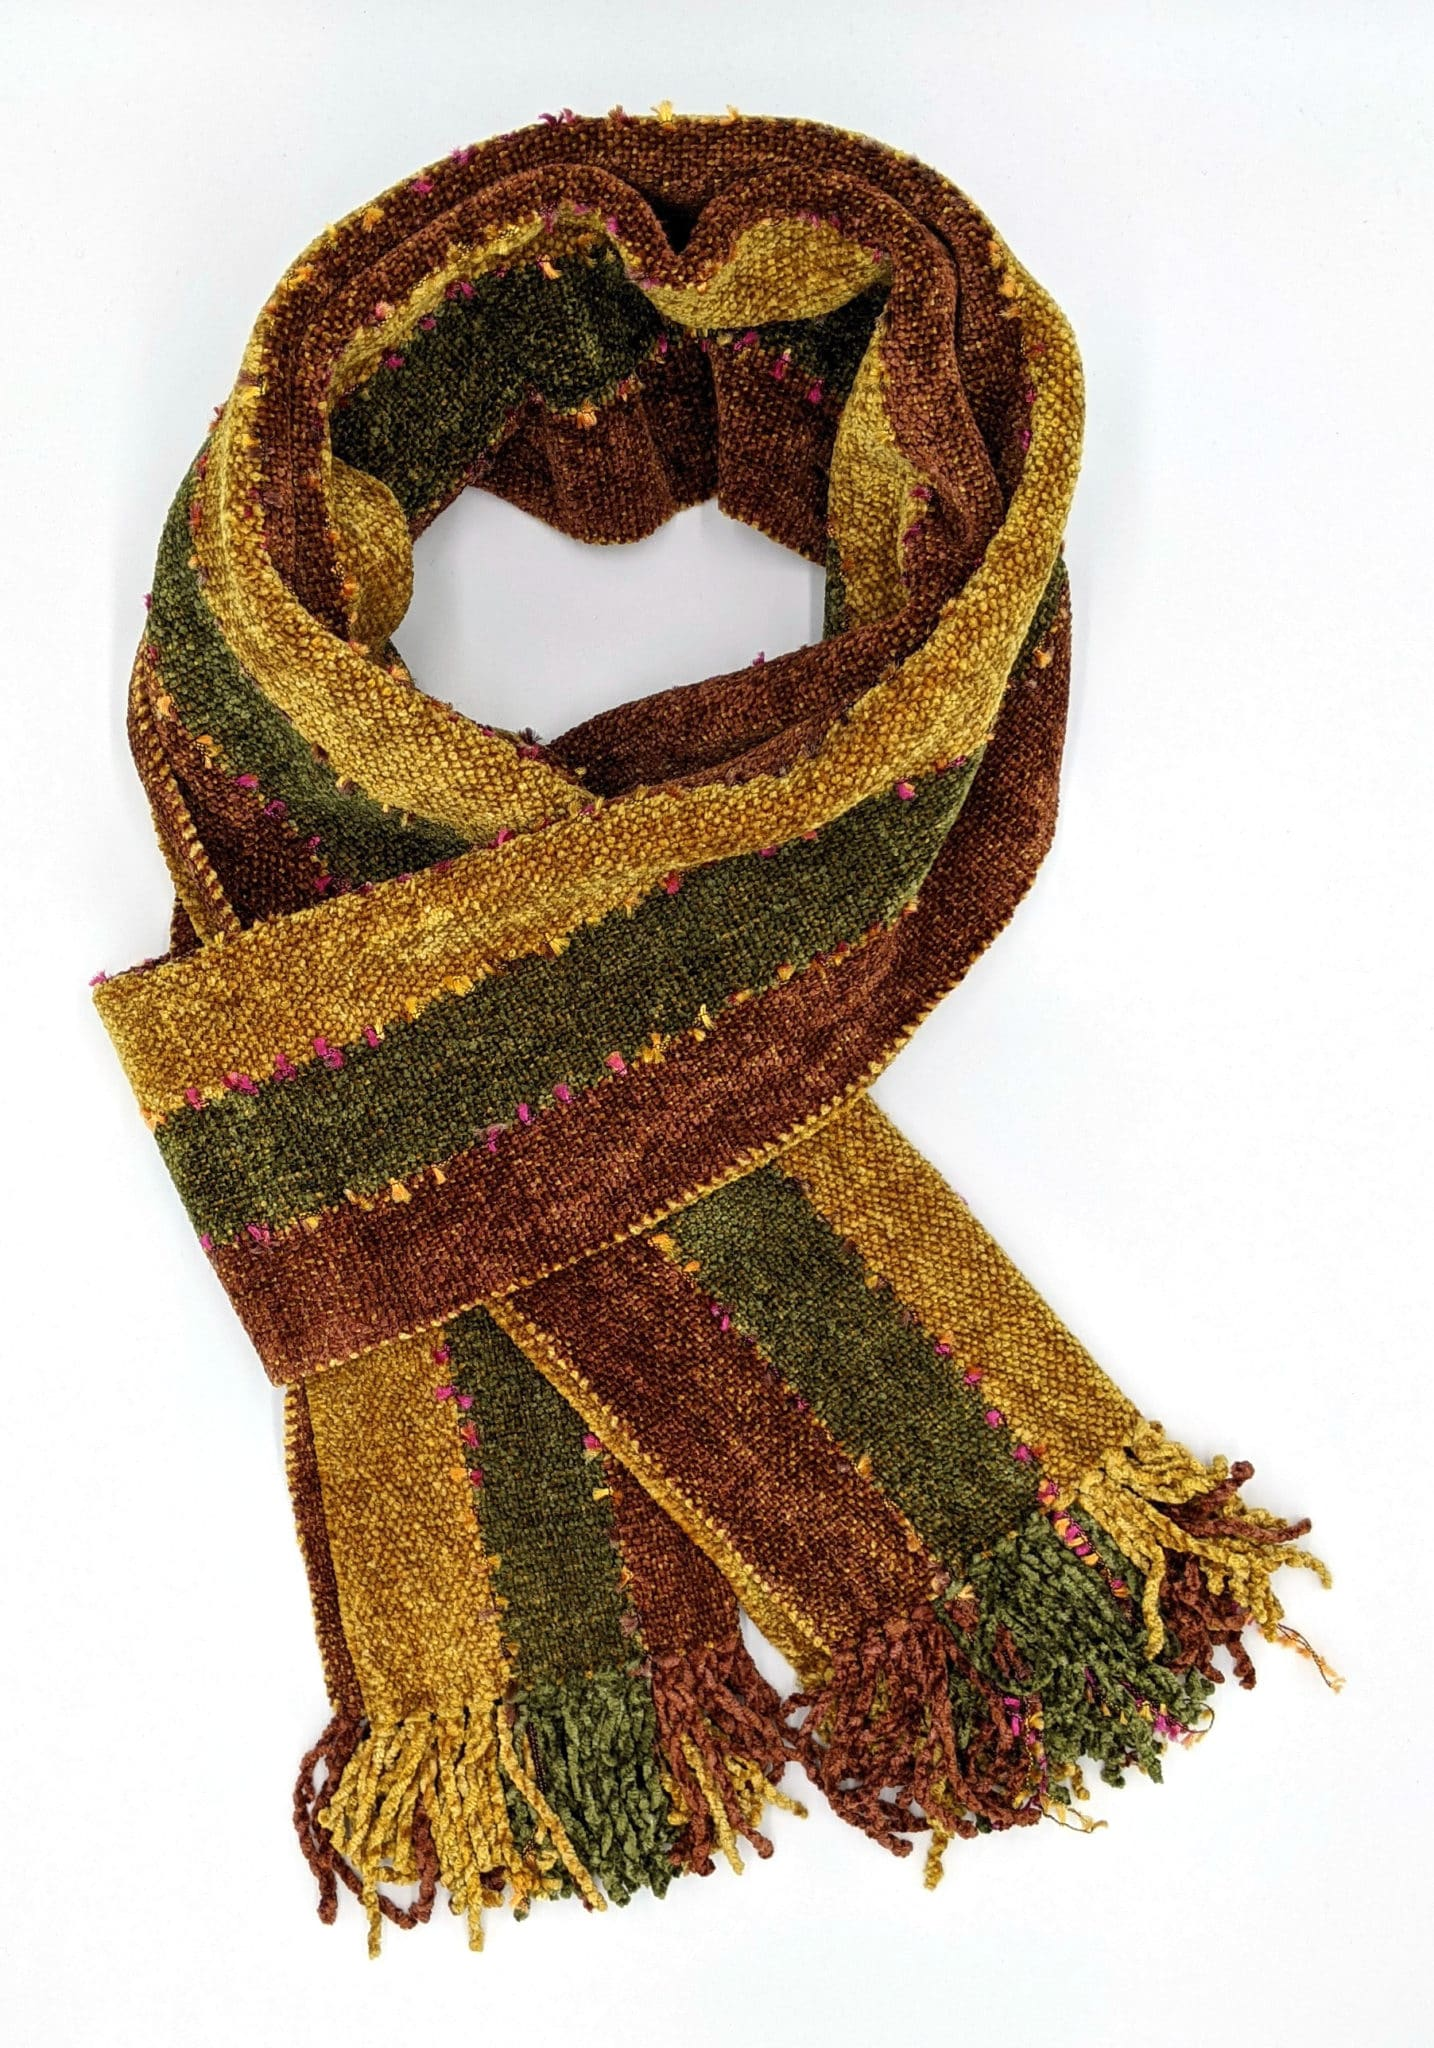 Brown, Gold, and Olive Stripes with Ornamental Yarn Accents Handwoven Bamboo Chenille Handwoven Scarf 8 x 68